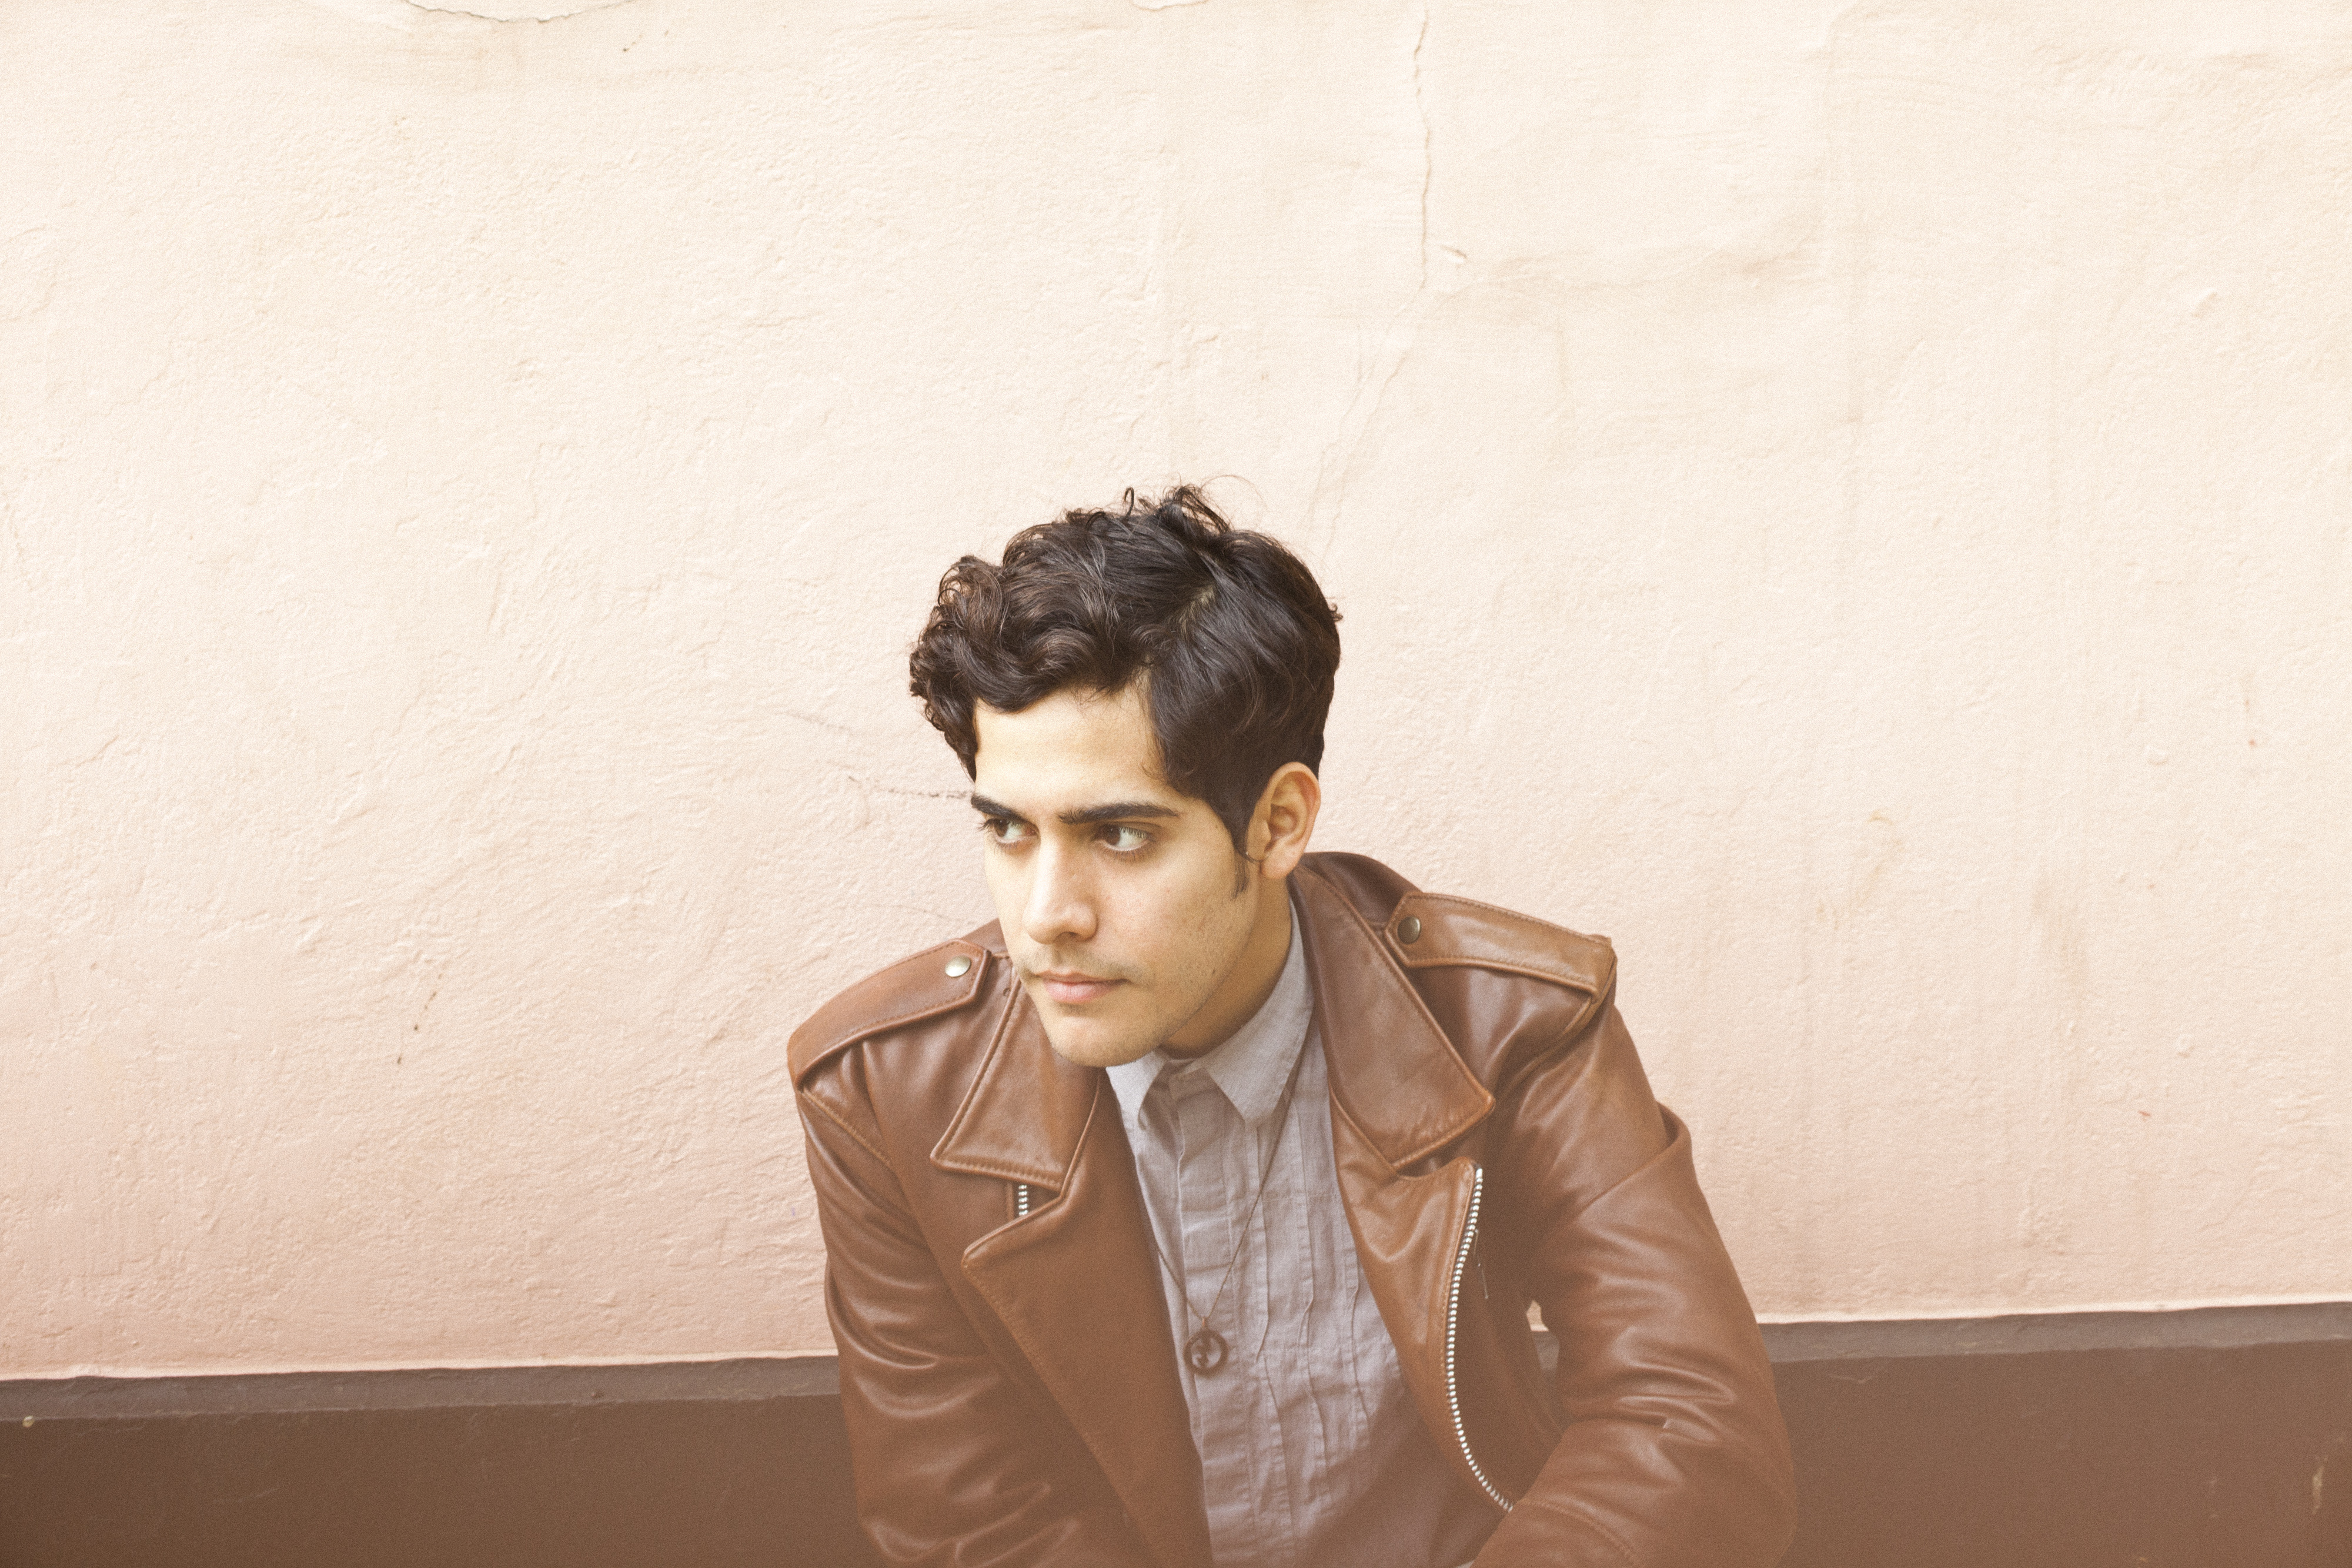 Neon Indian Leads an All-Star Prince Tribute Featuring Xenia Rubinos, Holy Ghost, and More